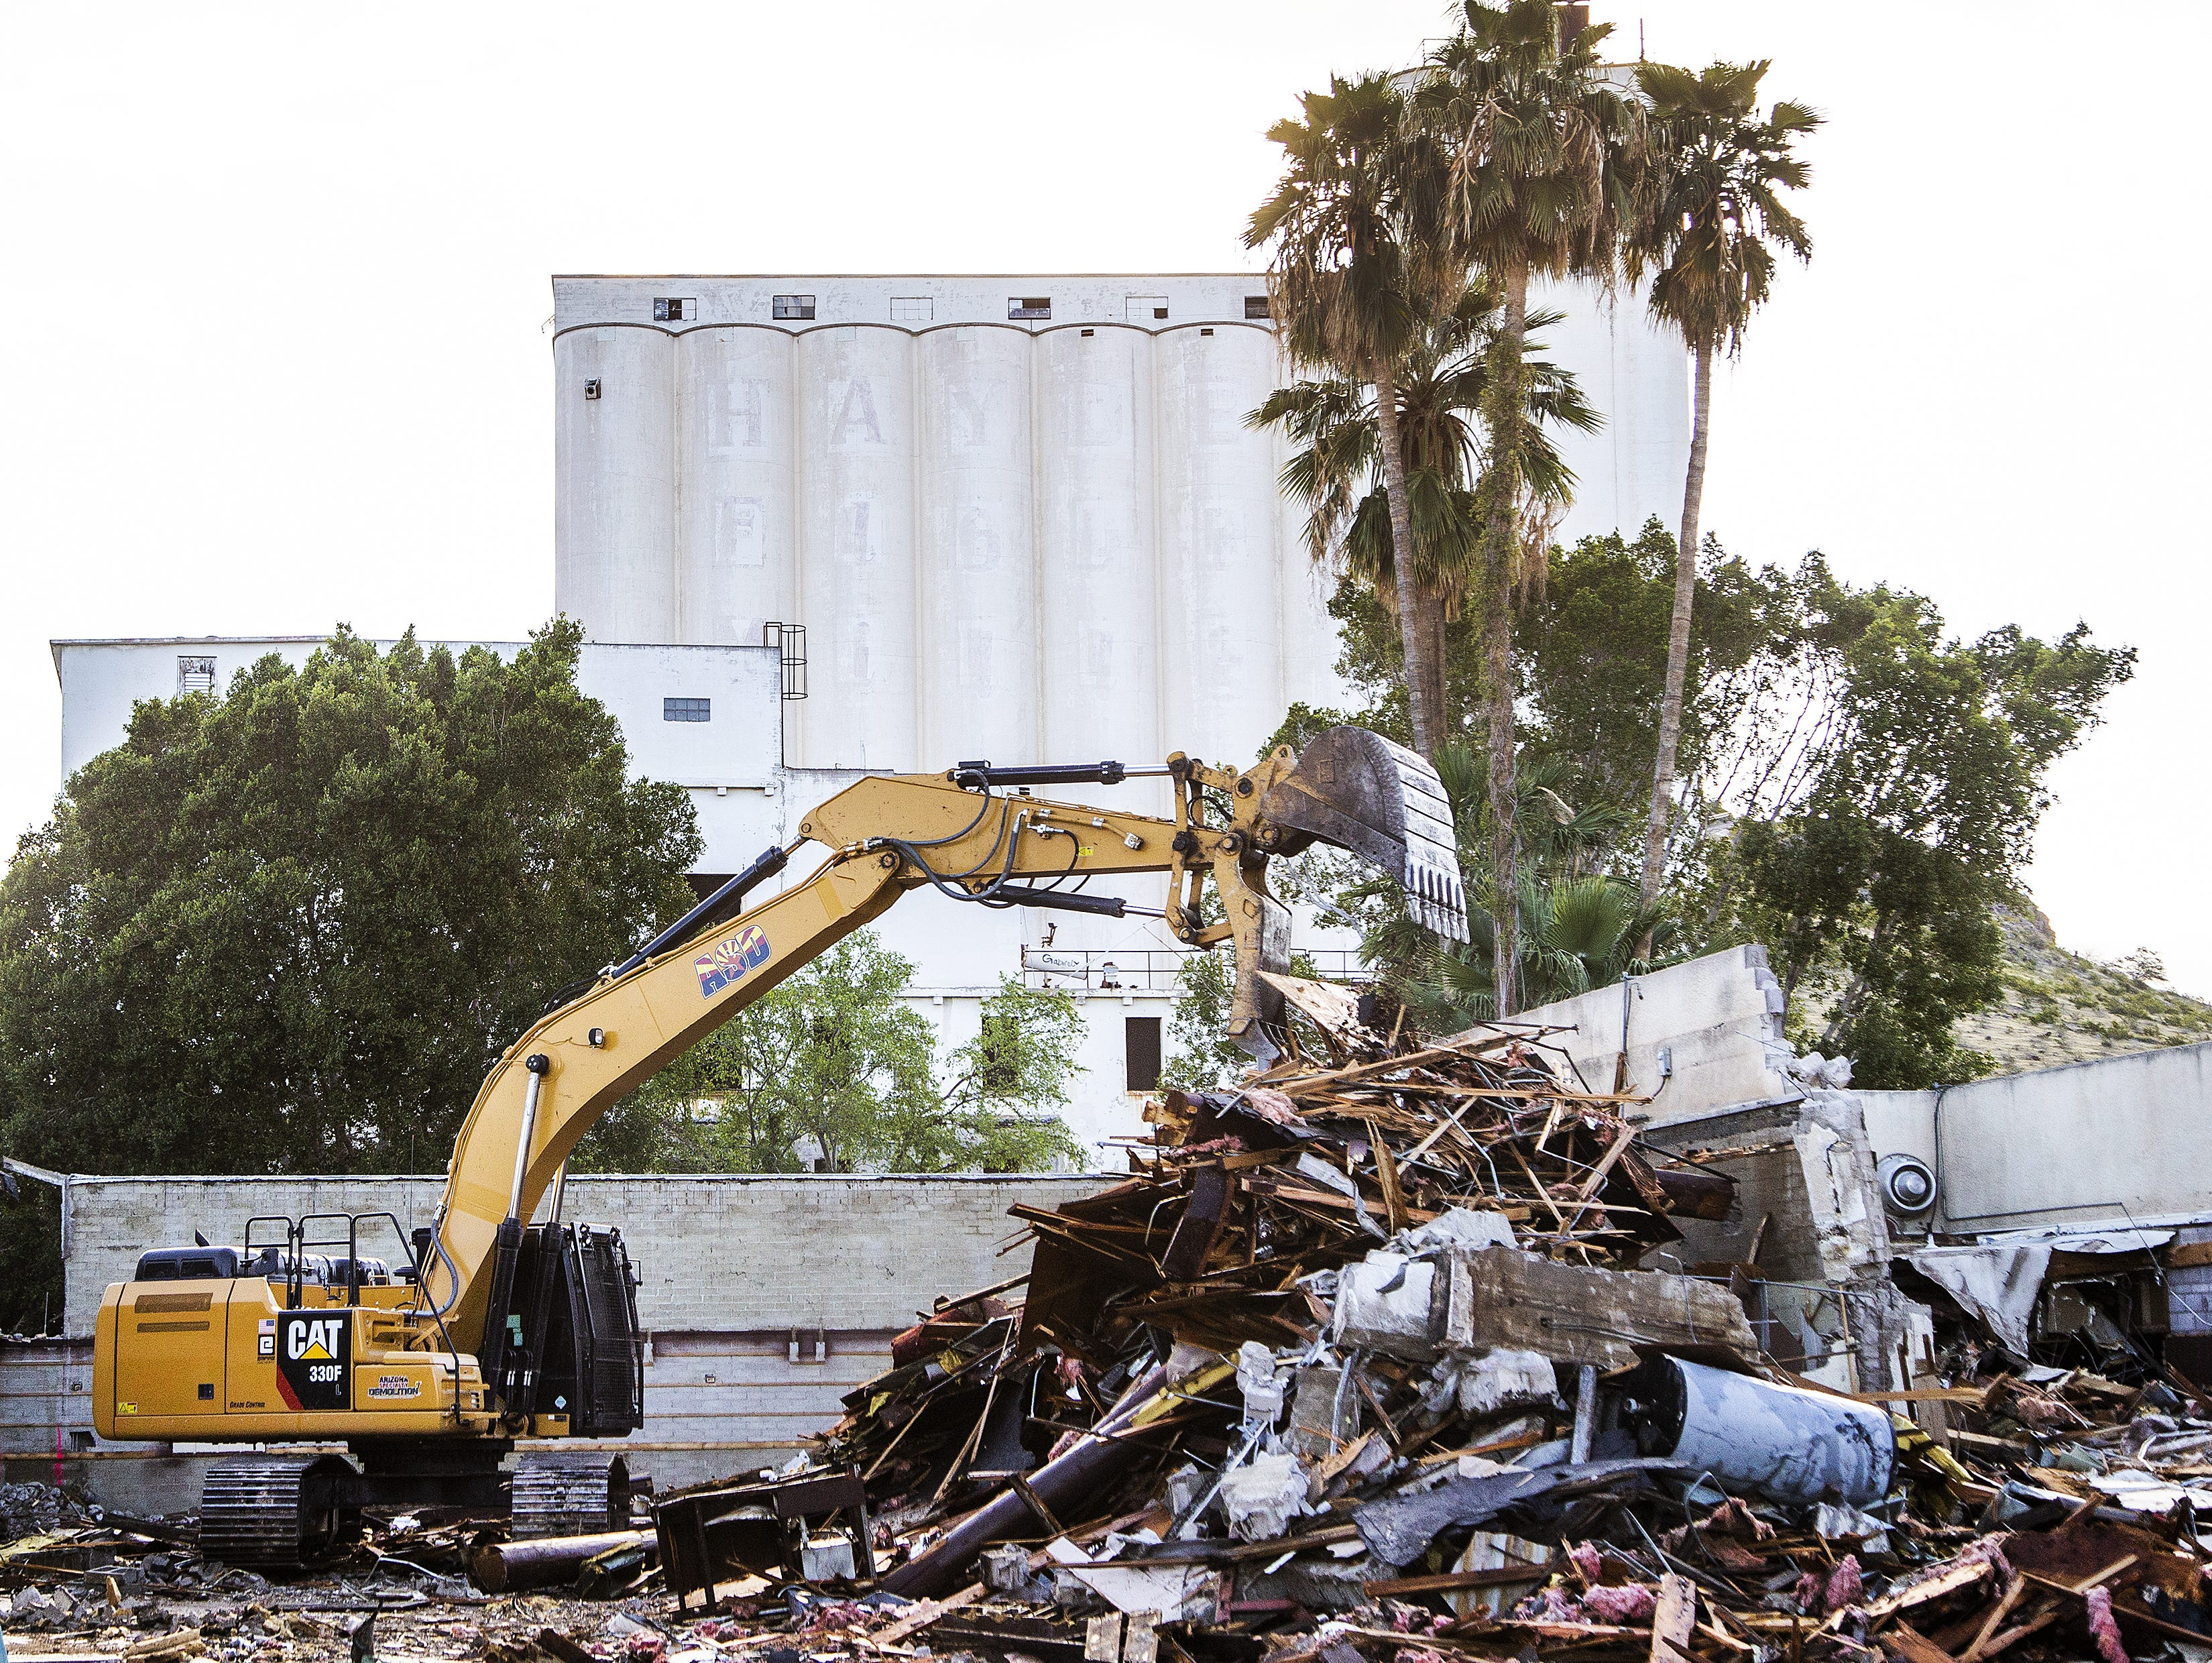 Workers tear down part of the old Monti's La Casa Vieja on Mill Avenue in Tempe on March 21, 2019.   The parts of the building that are original, dating back to the late 1800s, are being retained. Only add-ons and additions made in later years are being torn down.